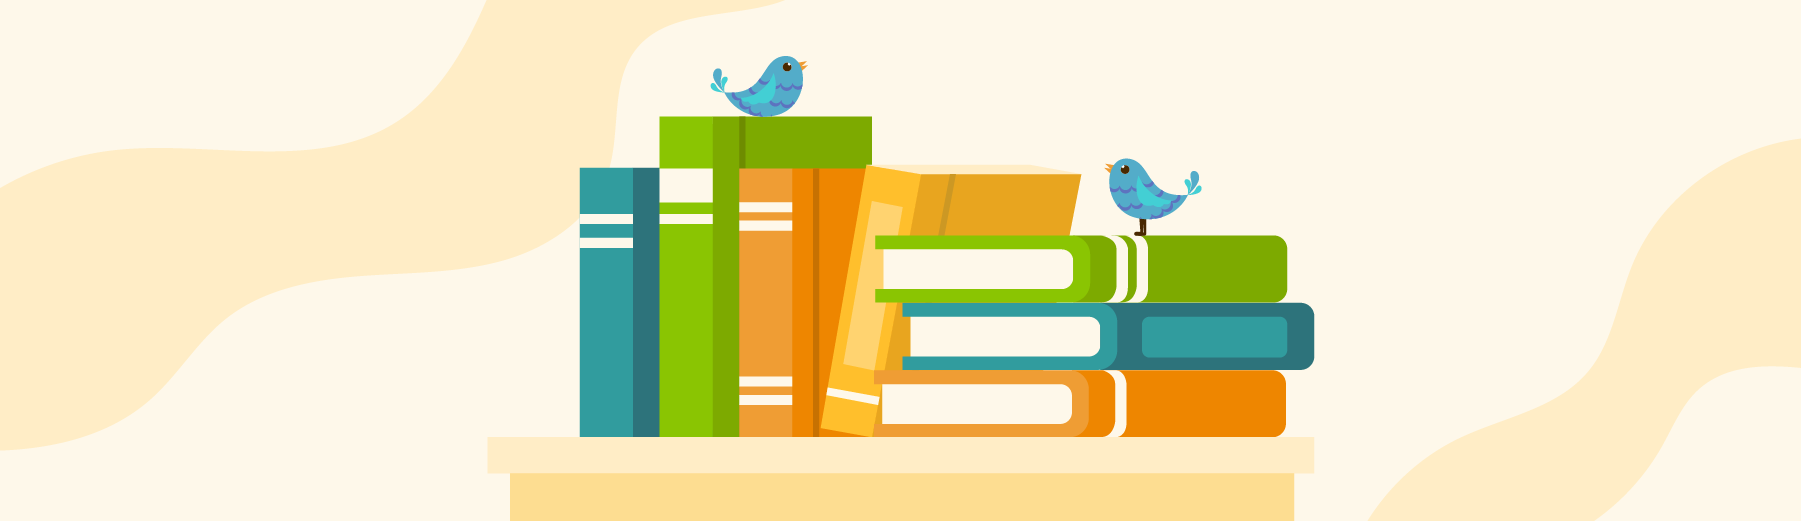 10 social media marketing books to add to your reading list